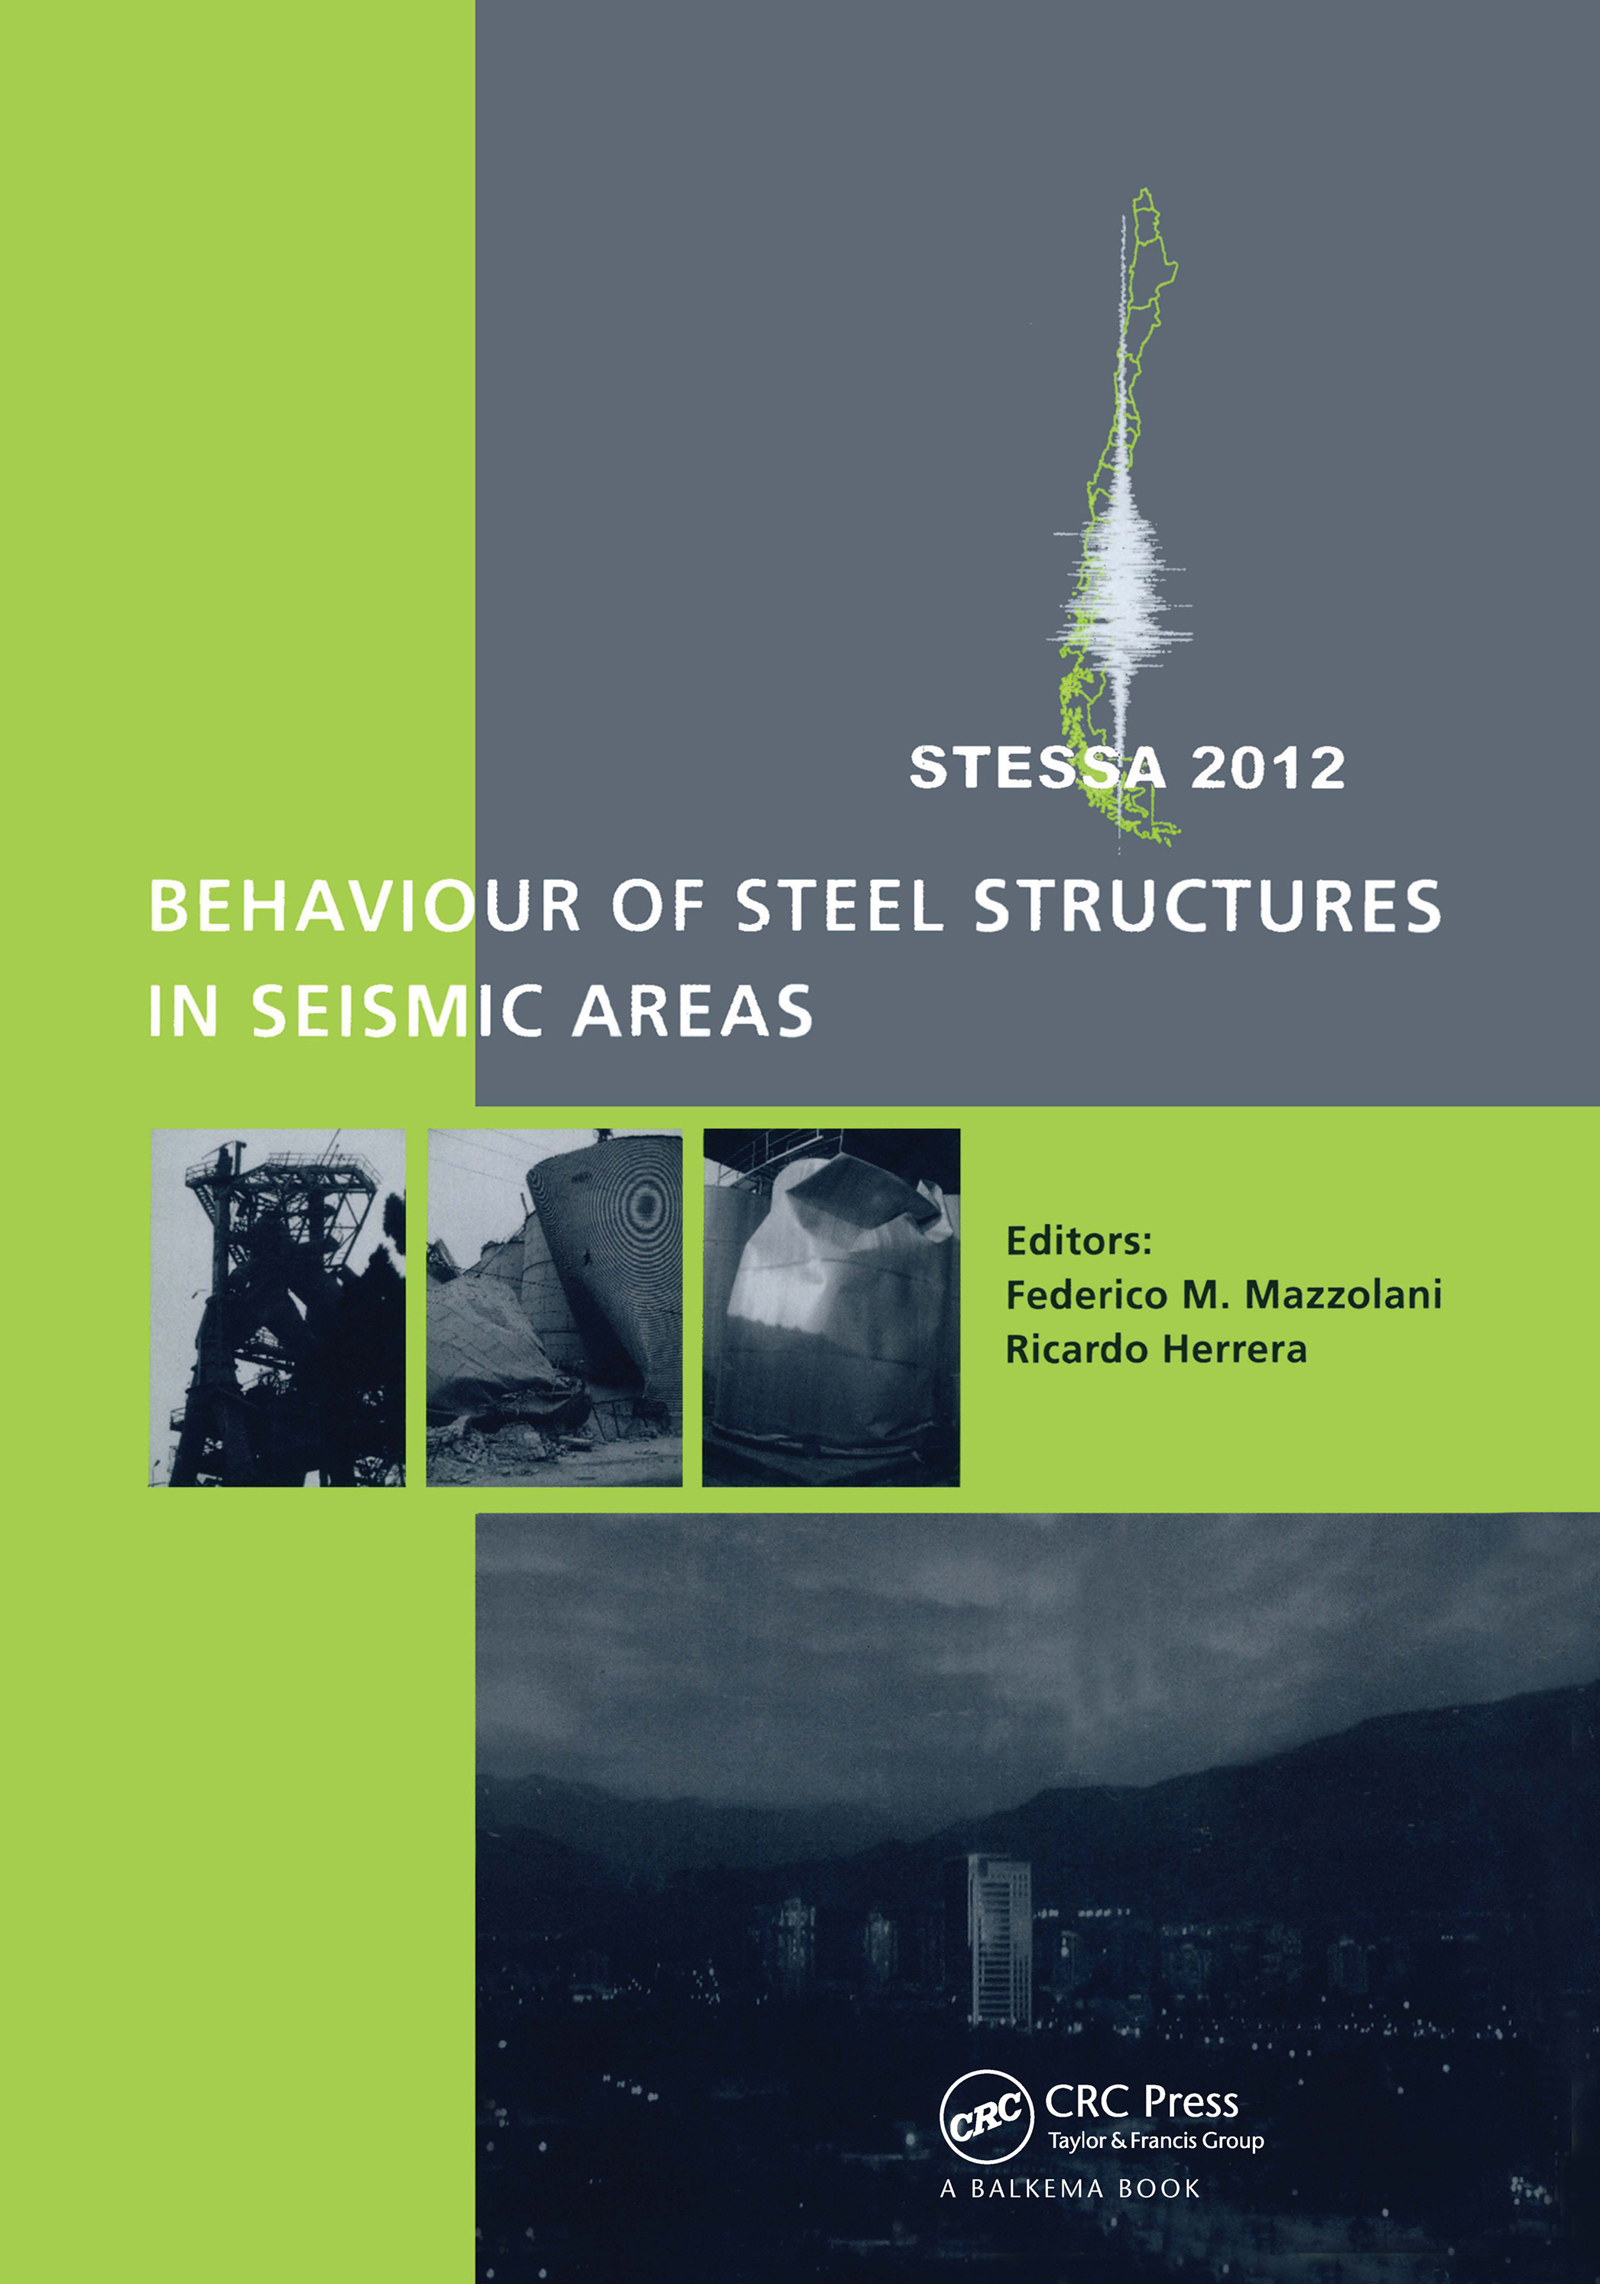 Behaviour of Steel Structures in Seismic Areas: STESSA 2012 (Pack - Book and CD) book cover